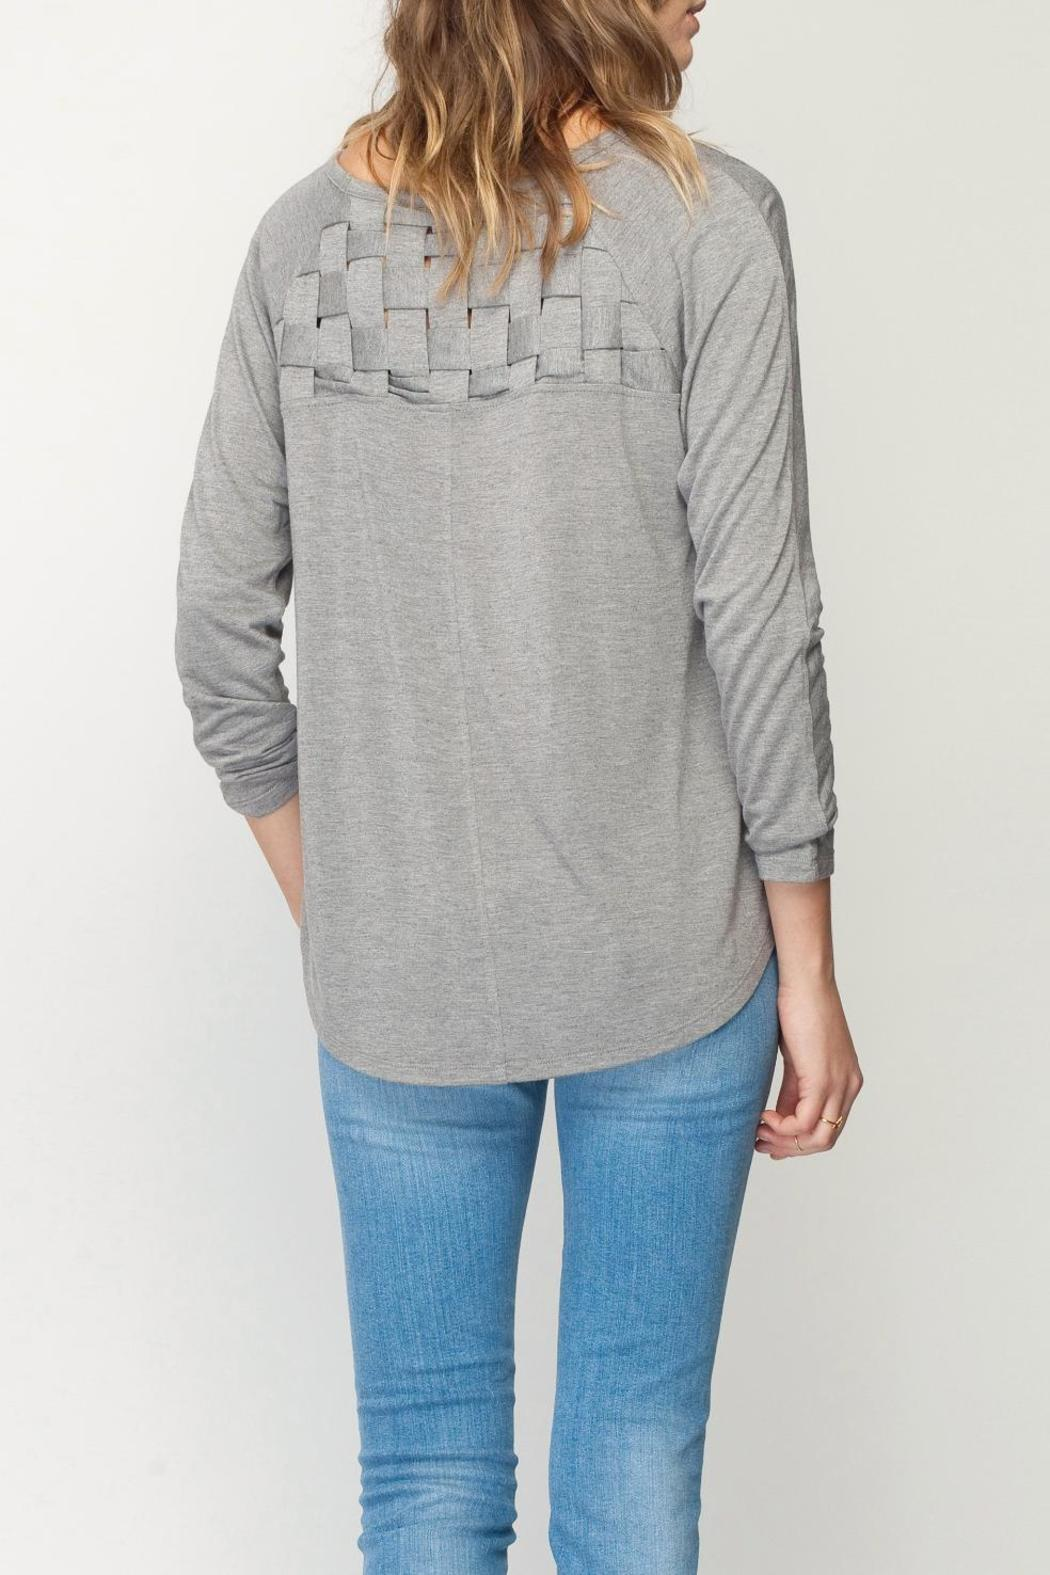 Gentle Fawn Heathered Felicity Top - Back Cropped Image